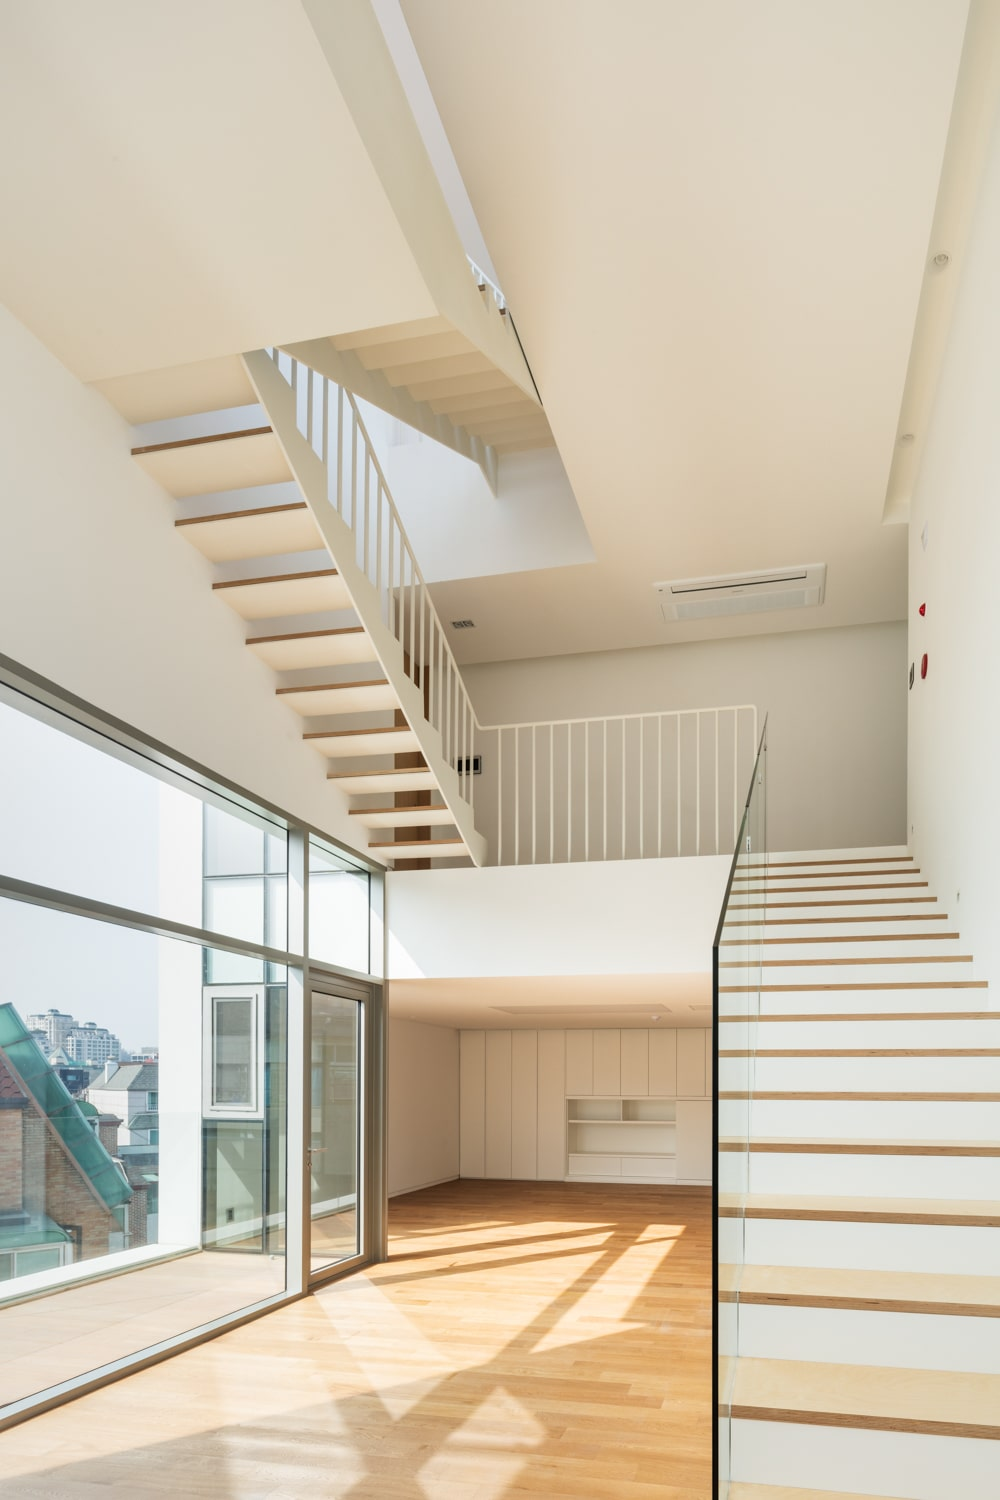 The natural lights coming in pair well with the beige walls and beige ceiling of the large area.